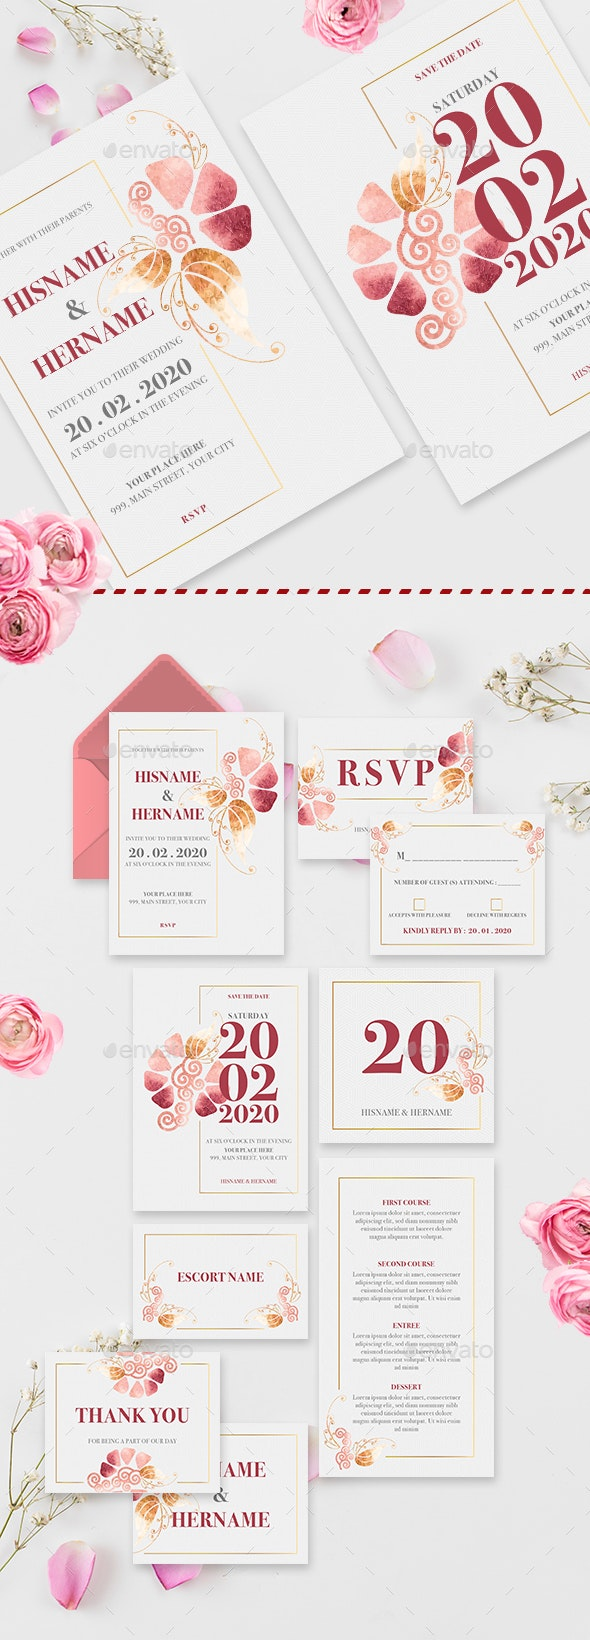 Sweet Blossoms Wedding Invitation Suite - Weddings Cards & Invites